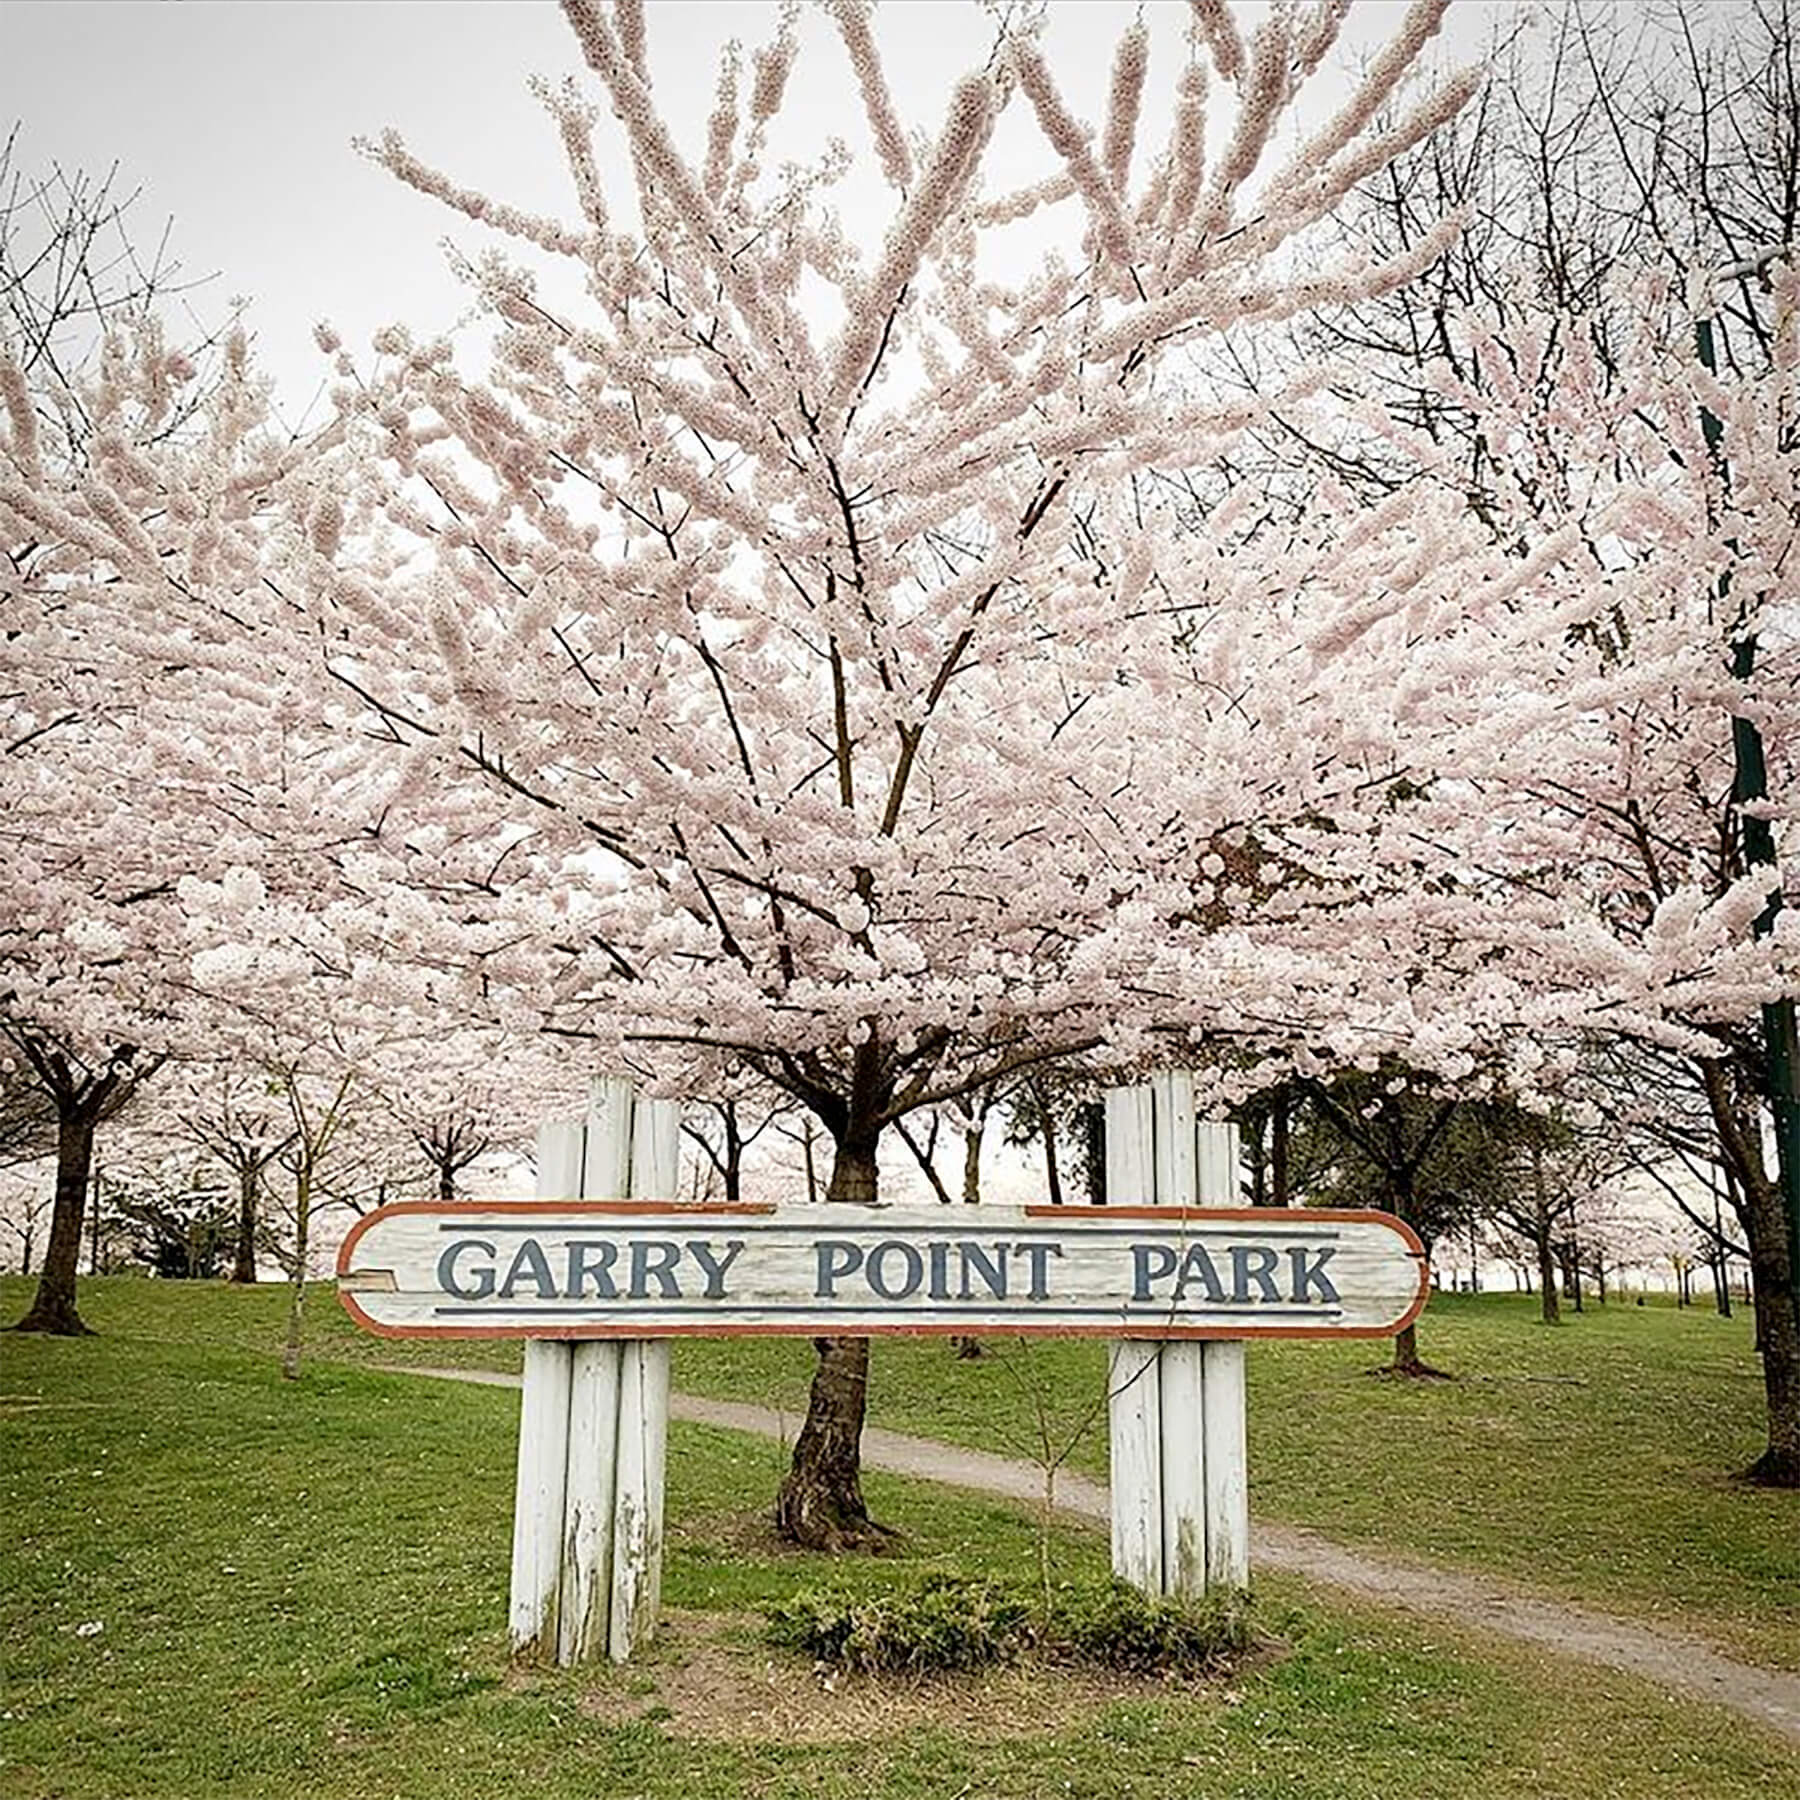 Photo of the Garry Point Park sign with cherry trees in bloom behind it.